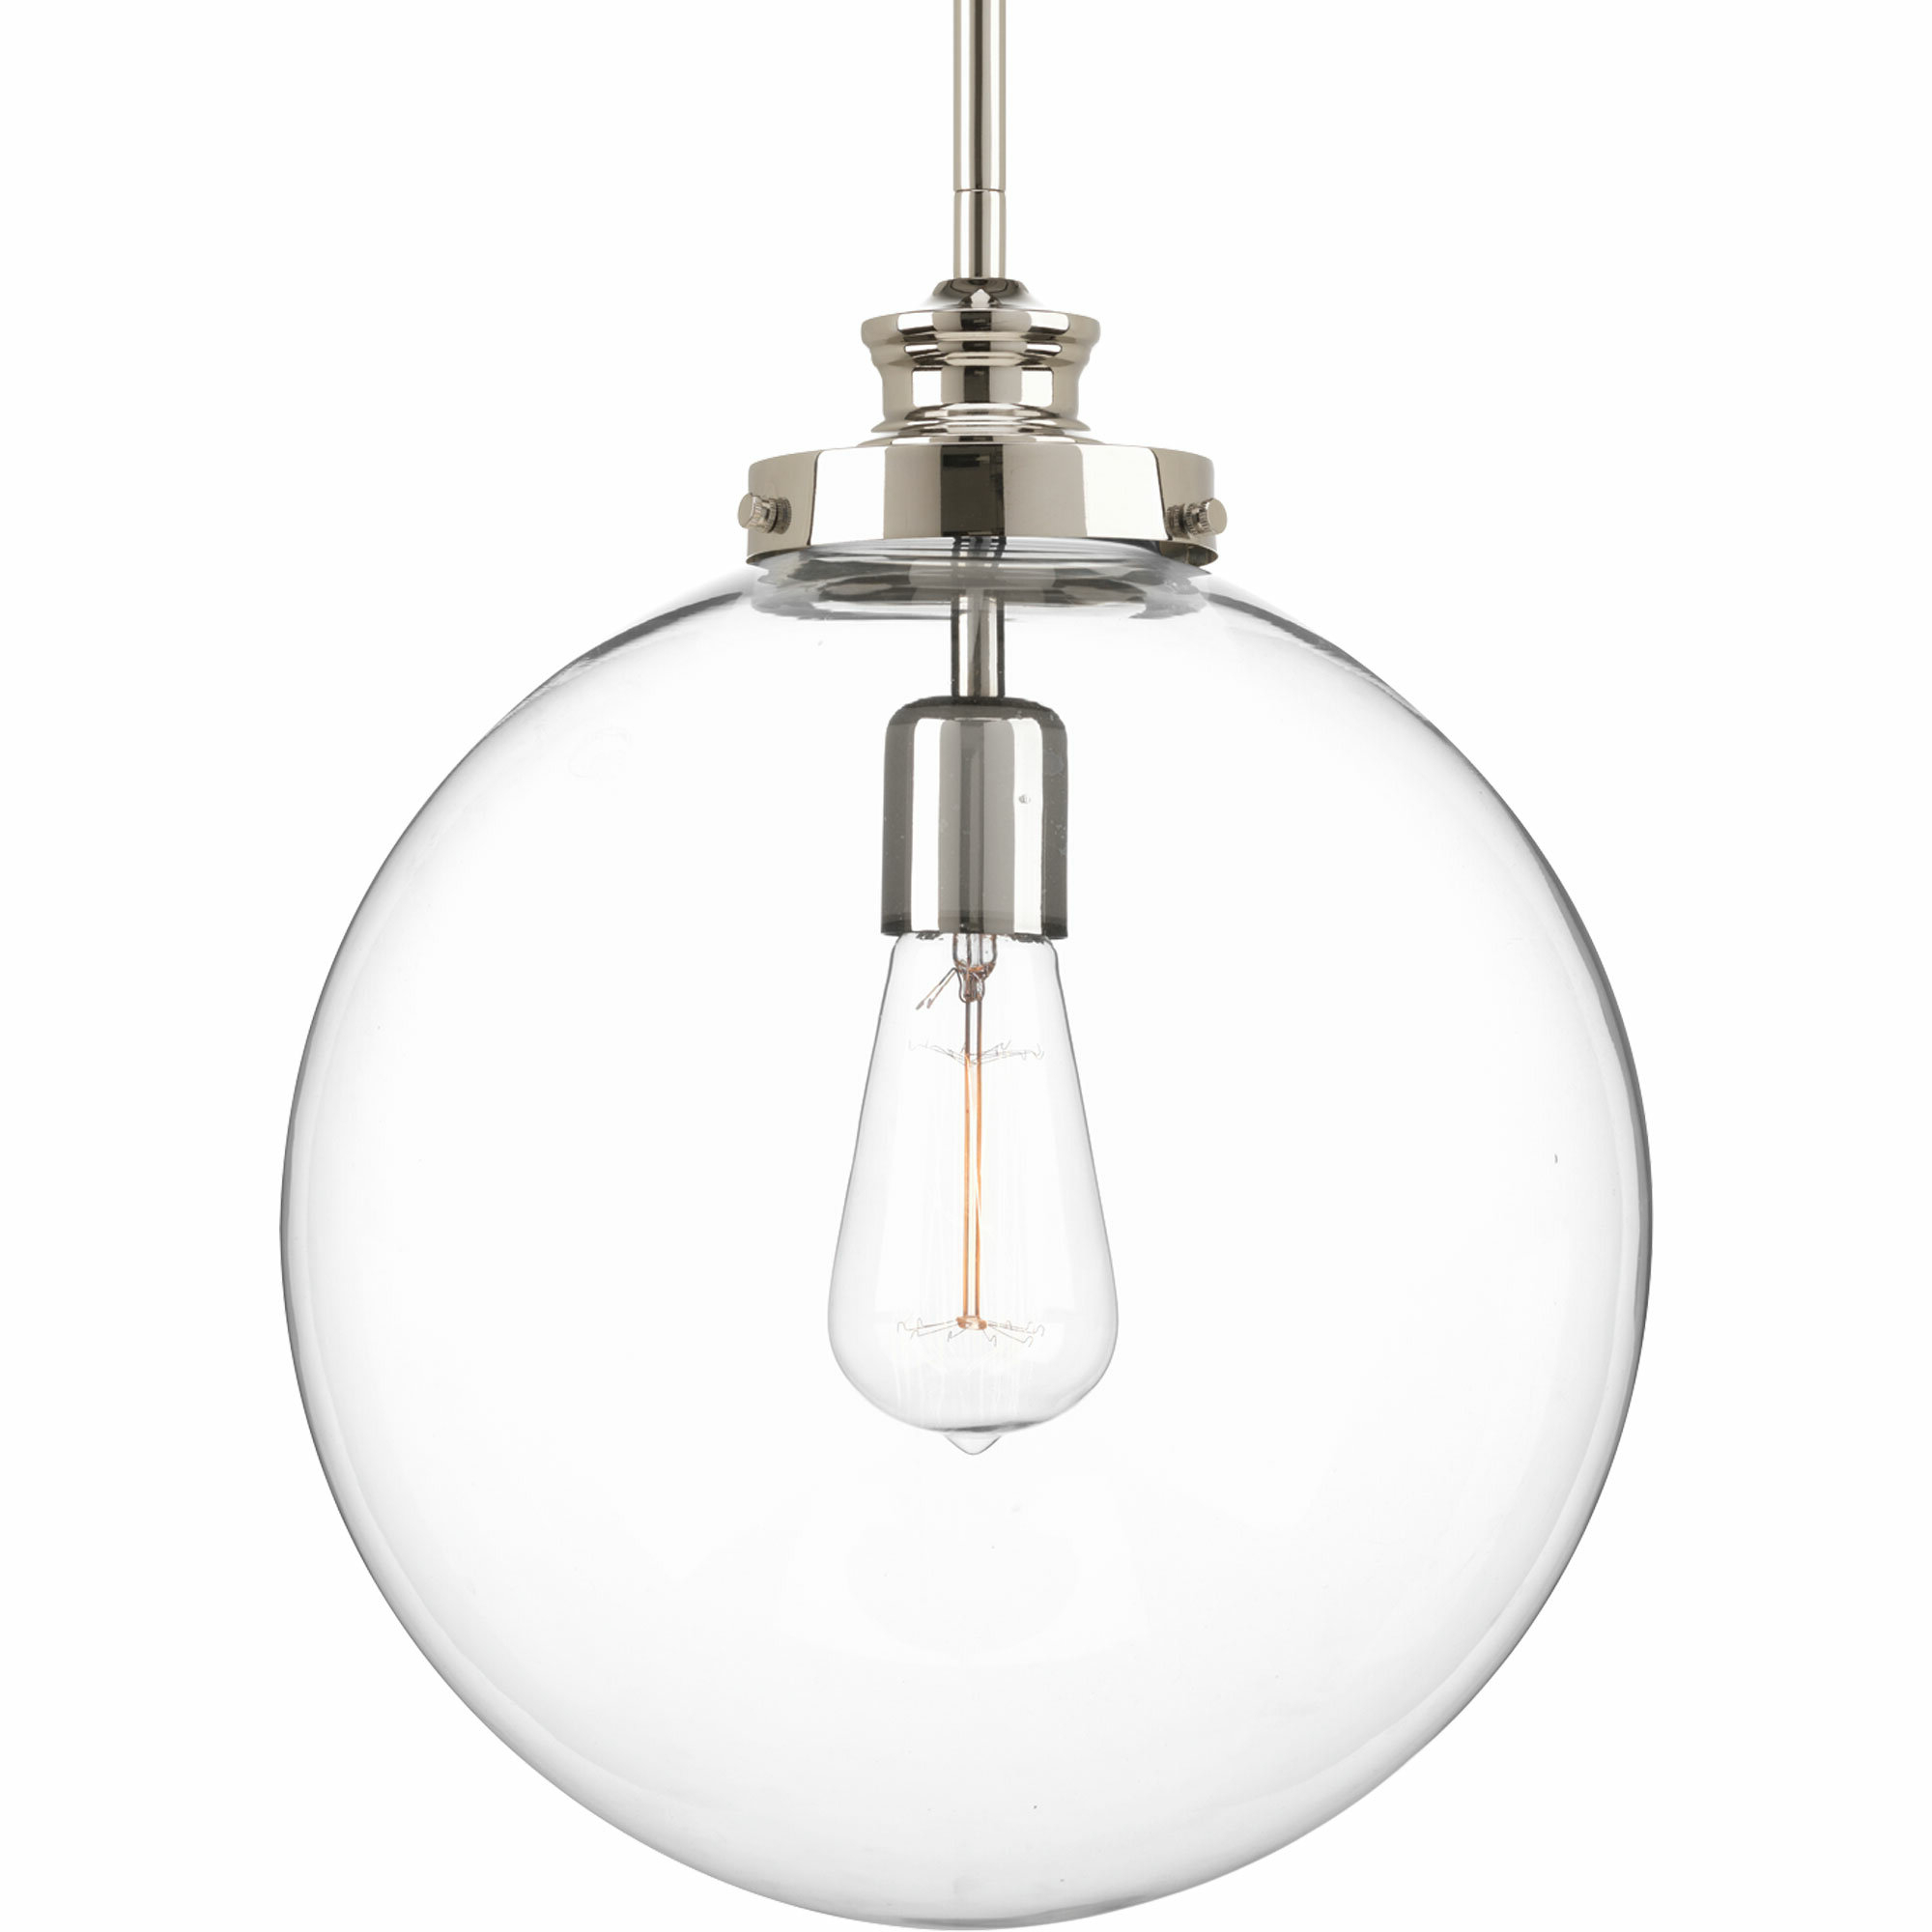 Cayden 1 Light Single Globe Pendant Pertaining To Most Up To Date Prange 1 Light Single Globe Pendants (View 9 of 25)